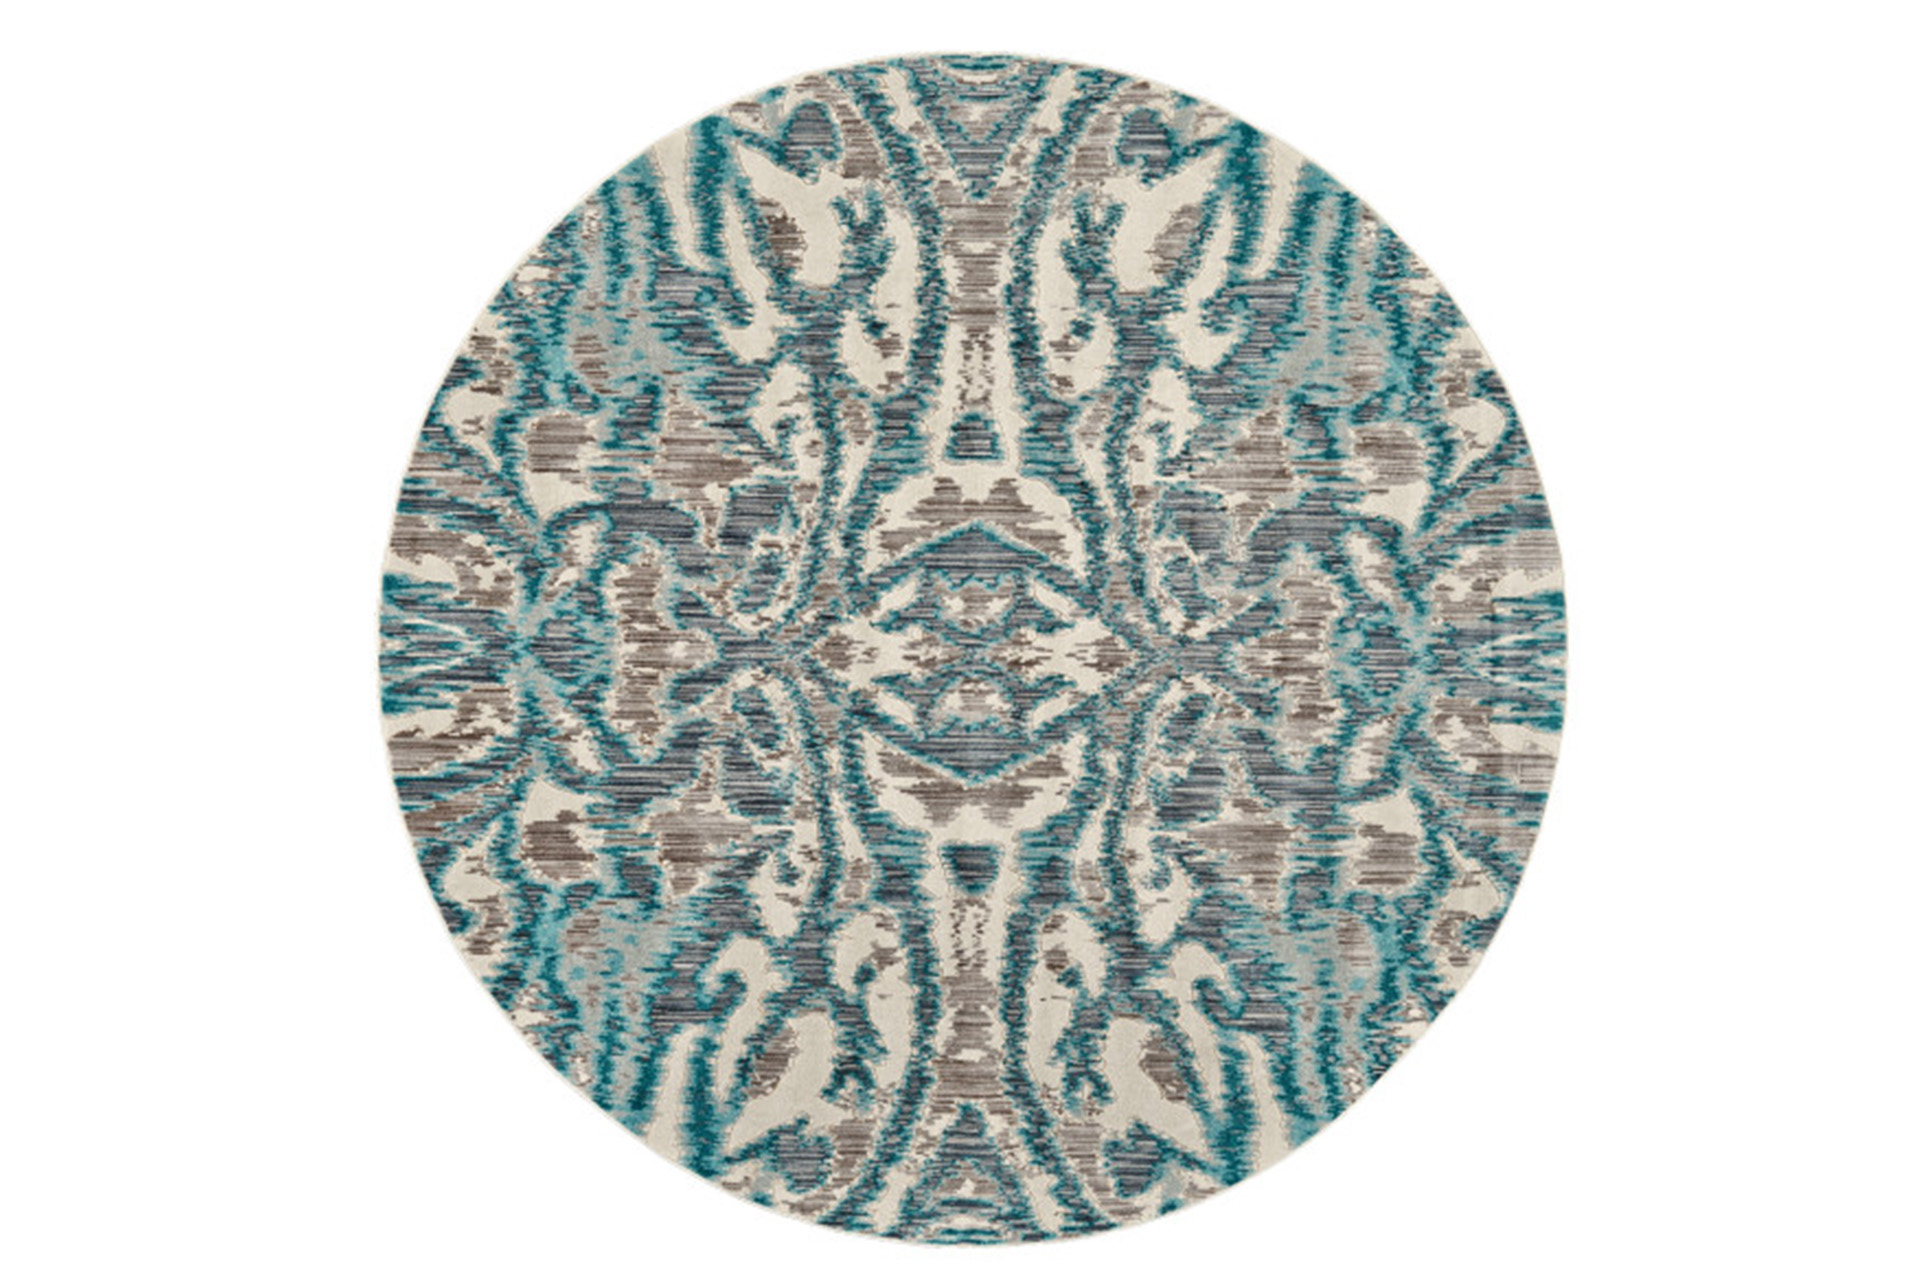 105 Inch Round Rug Turquoise And Grey Kaleidoscope Damask Living Spaces